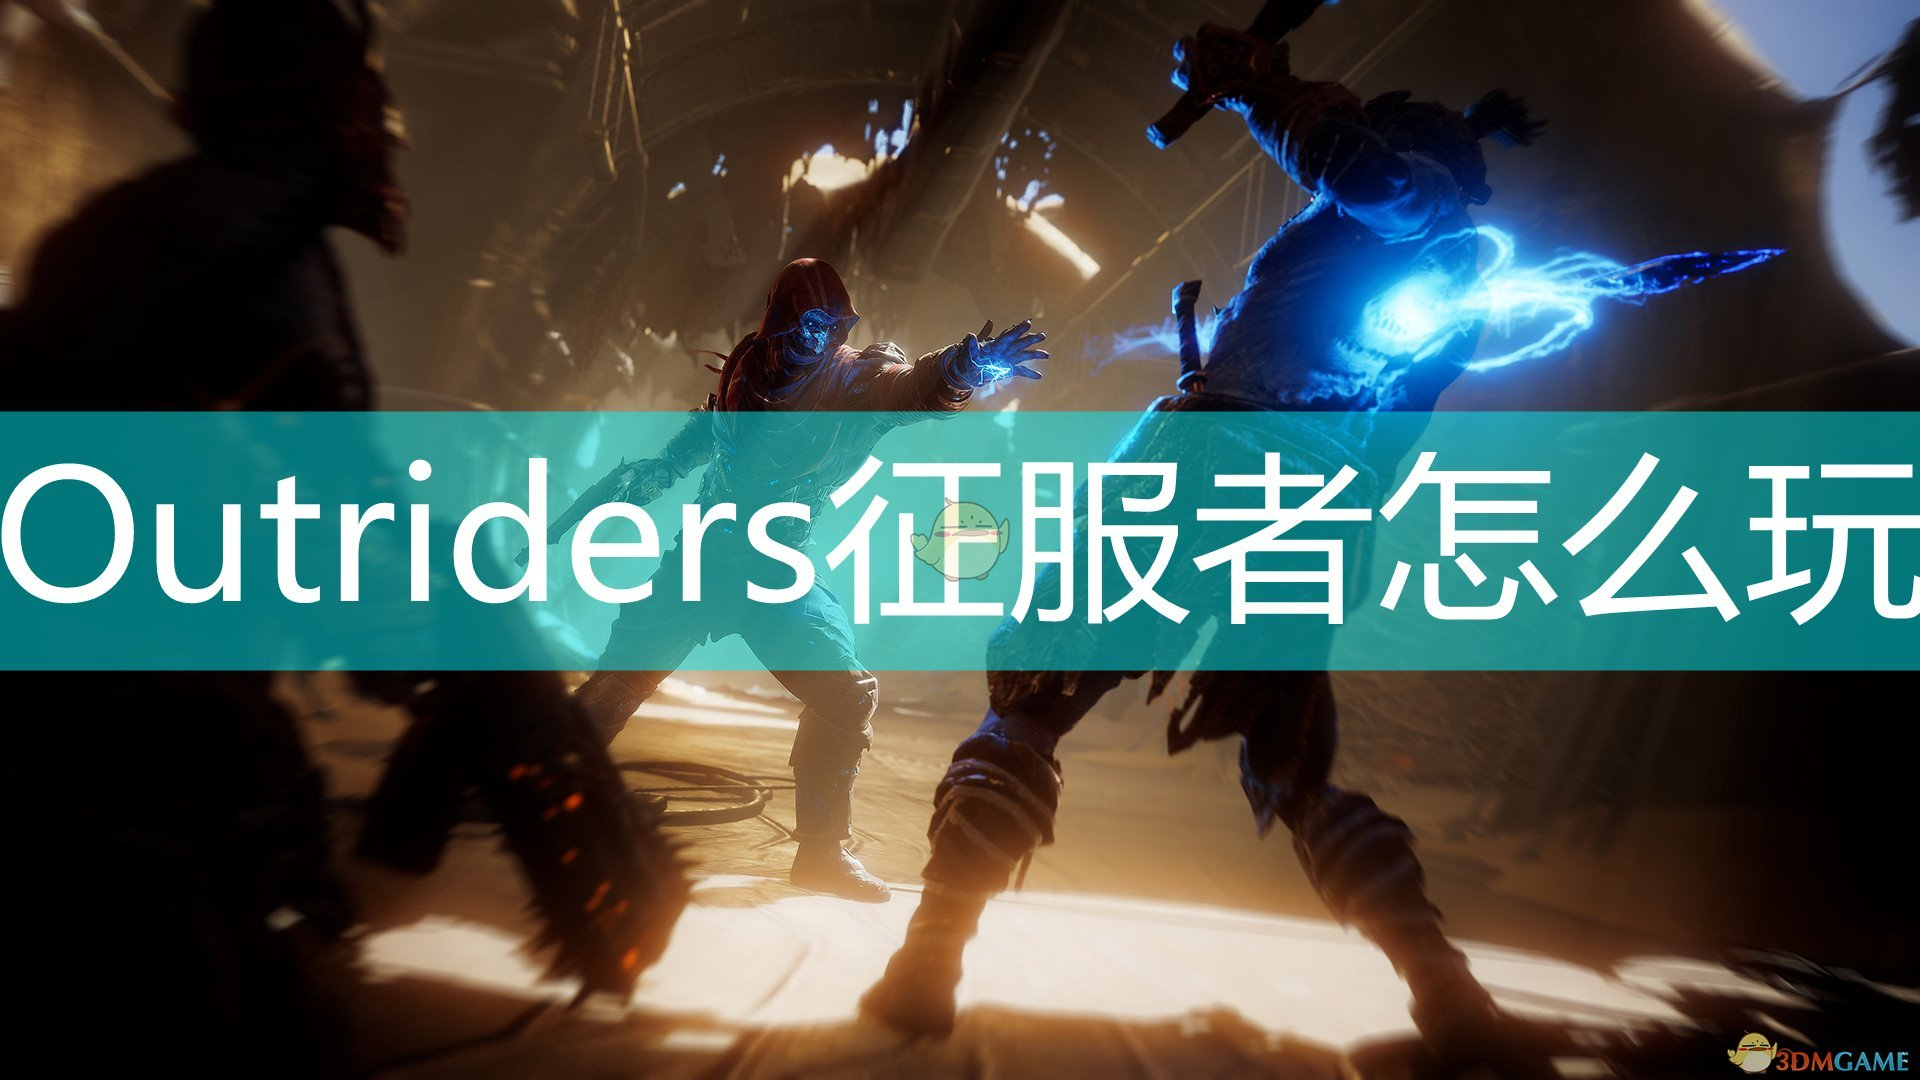 《Outriders》征服者前期攻略分享